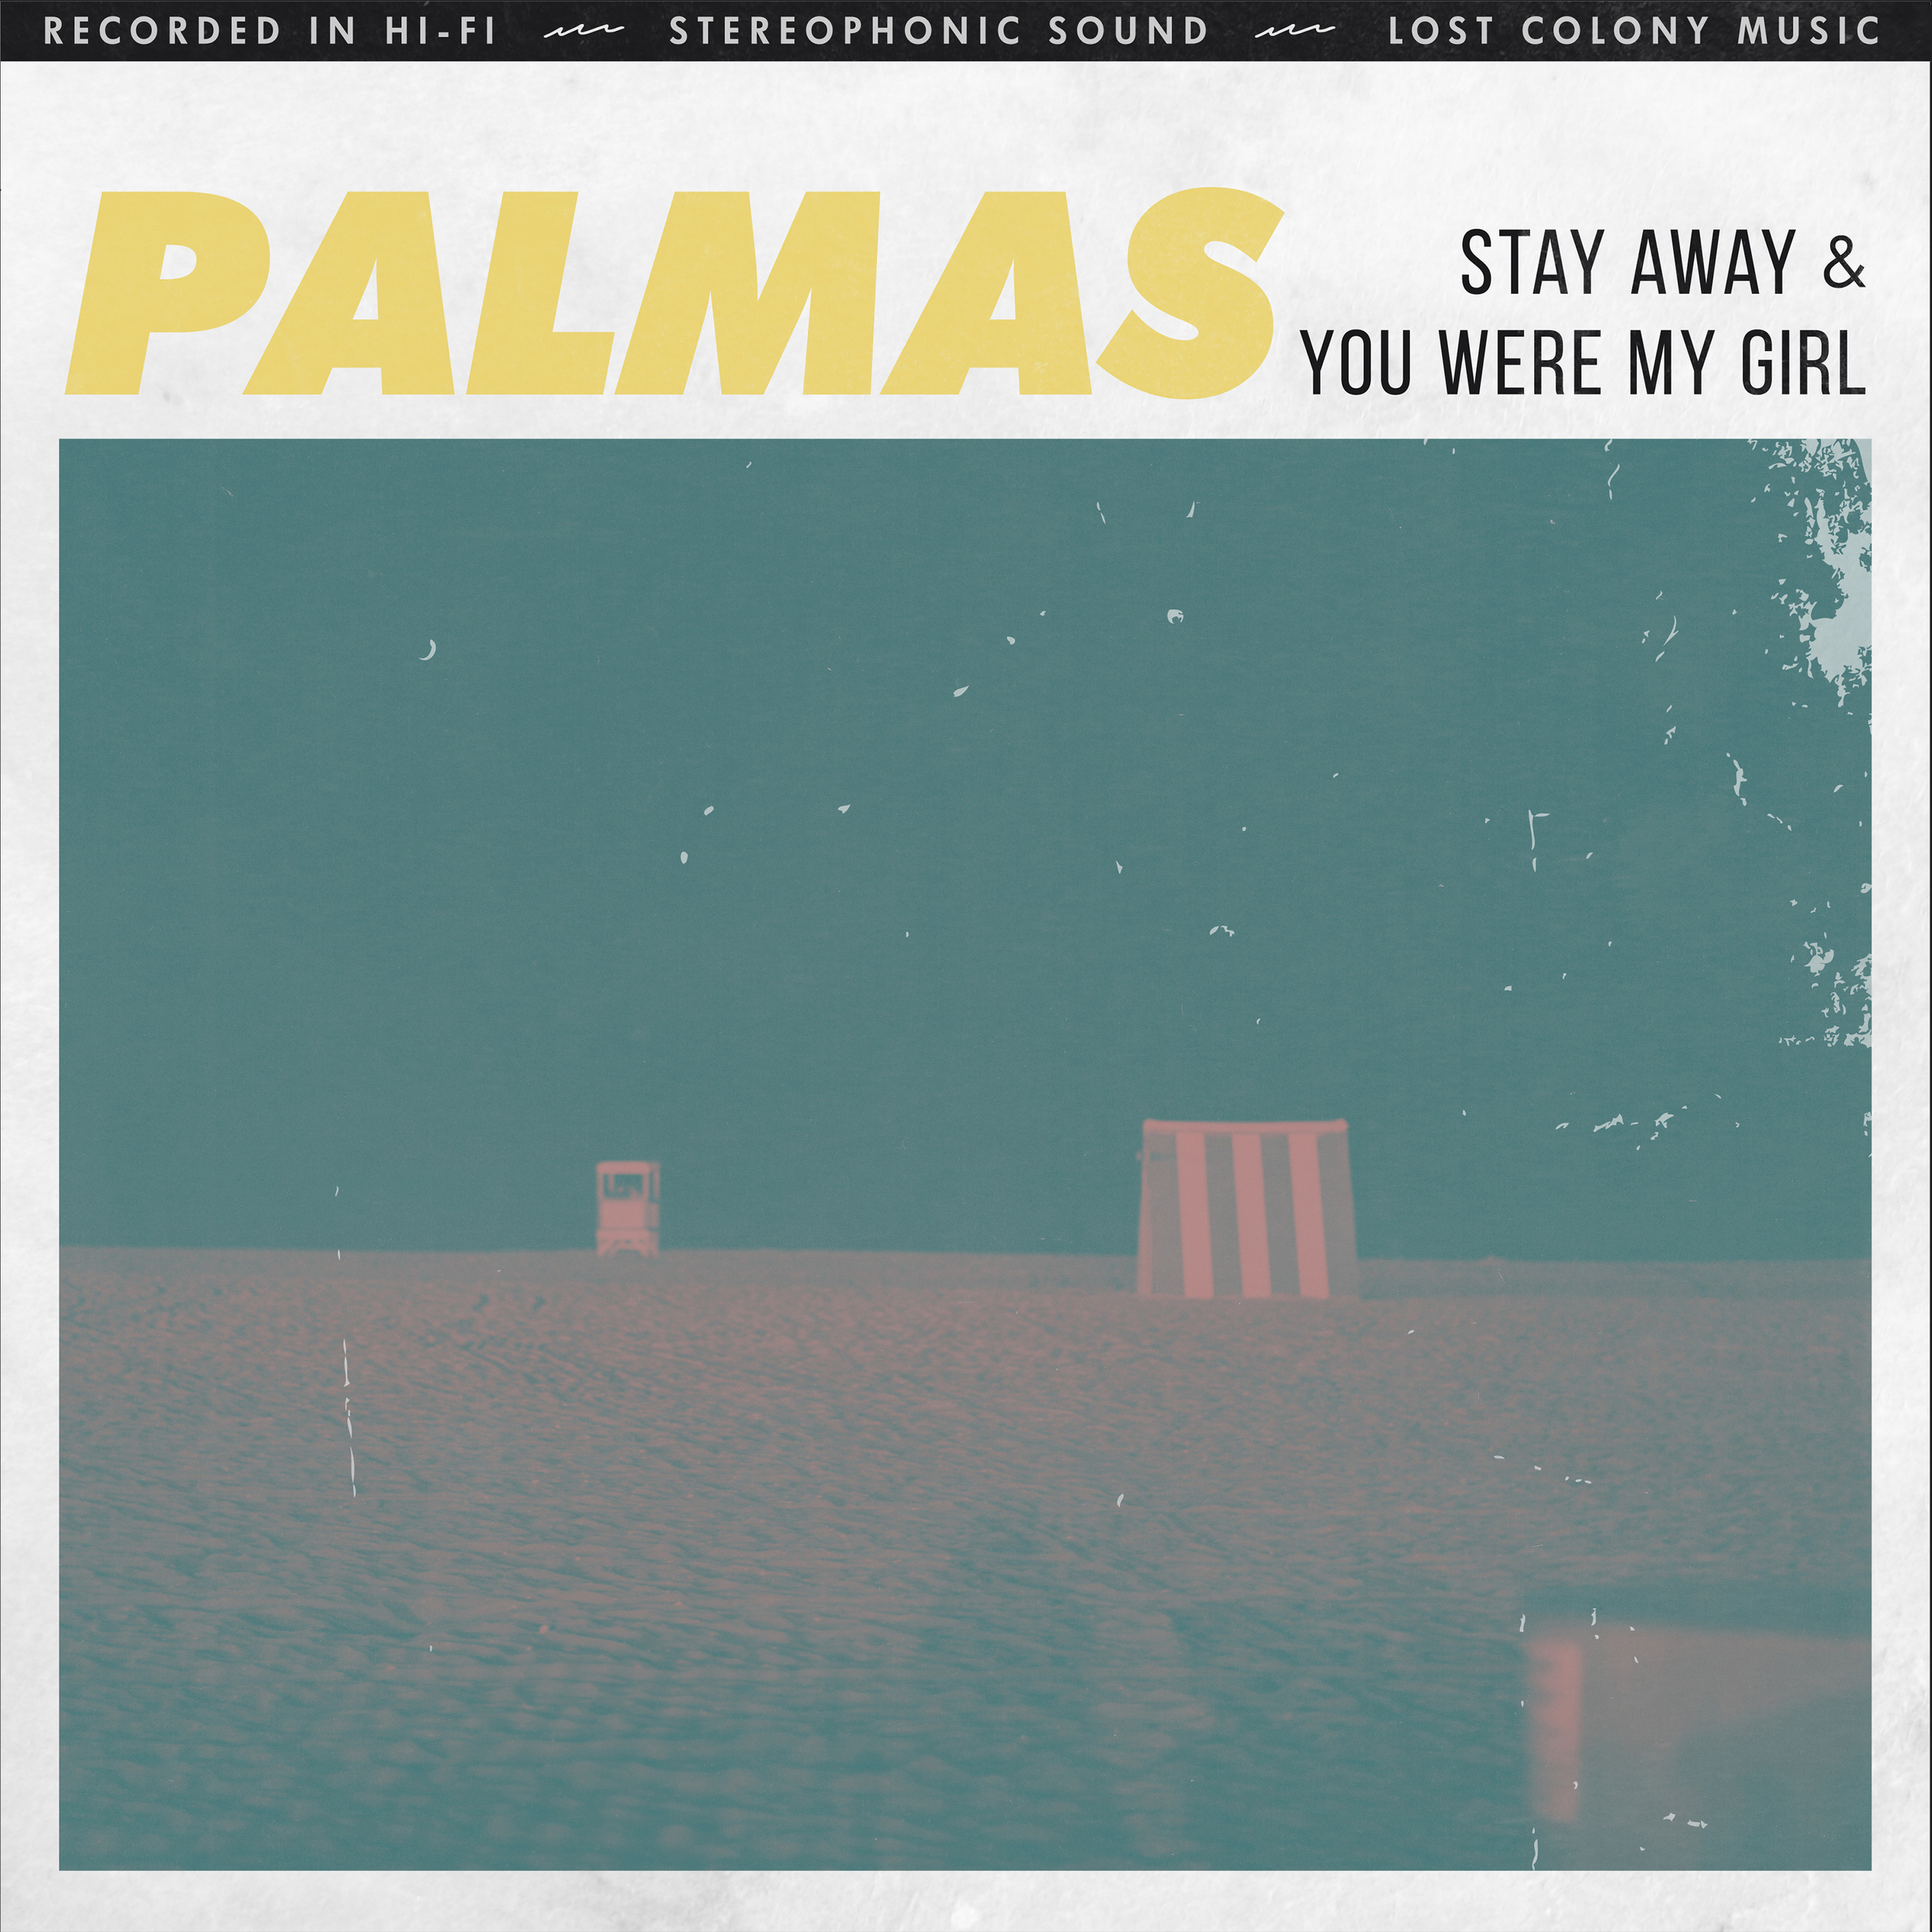 "PALMAS   On first listen, Philadelphia based indie rockers PALMAS take you back through time, straight to the stage of a 1950s tiki dive bar. It's a place where locals and outsiders find themselves dancing close under glittering lights, surrounded by a fog of slow-swirling cigarette smoke. Here, women in thick cat eyeliner melt into mysteriously dark silhouettes.  When beats stop and eyes open, the band (Eric Camarota - Bass, Matthew Young - Guitar, Adam Cantiello - Guitar, Kurt Cain - Vocals/Organs, and Pat Degan - Drums) are no longer performing for a sea of one-night lovers somewhere in the past. Instead, they're here, on a beach with good friends and guitars, drinking cheap Mexican beer around a bonfire.  Palmas' music has already captivated fans and critics alike. They've been playing sold-out shows for over a year and have been featured in publications such as NYLON, Noisey, and Daily Music Insider, all before officially releasing any music.  Rehearsing in an off-season haunted house allows their surf-tinged tracks to come injected with an aura of fake blood, skulls, and zombies. PALMAS ride an eerily addicting line between sunny days and unnervingly dark nights. On tracks like ""Stay Away,"" the band evokes proof of their 1950s influence with reverberated guitar leads reminiscent of Nancy Sinatra or the opening of an original James Bond film. Their single ""Ride the Wave,"" however, brings you back to a sun-soaked beach party of the present where you can hear distant echoes of Temples, Best Coast, and The Growlers.  Perhaps the key to PALMAS' balance of colorful surf-y leads and heart-wrenching nostalgia lies at the foot of their merch table. You'll find it littered with old postcards bordered by twinkling lights. If you stare at one of those slowly fading, bent and twisted, ""Hello from Florida"" novelties long enough, you might get to follow PALMAS on their trip from a seemingly normal beach day to a smoke drenched dance floor that's lost in time.  In addition to premiering their music video for ""Stay Away"" via Noisey/Vice, PALMAS has recently announced their freshly signed deal with NYC label Lost Colony Music to release an A/B side ""Stay Away""/""You Were My Girl"" with an EP to follow in November."